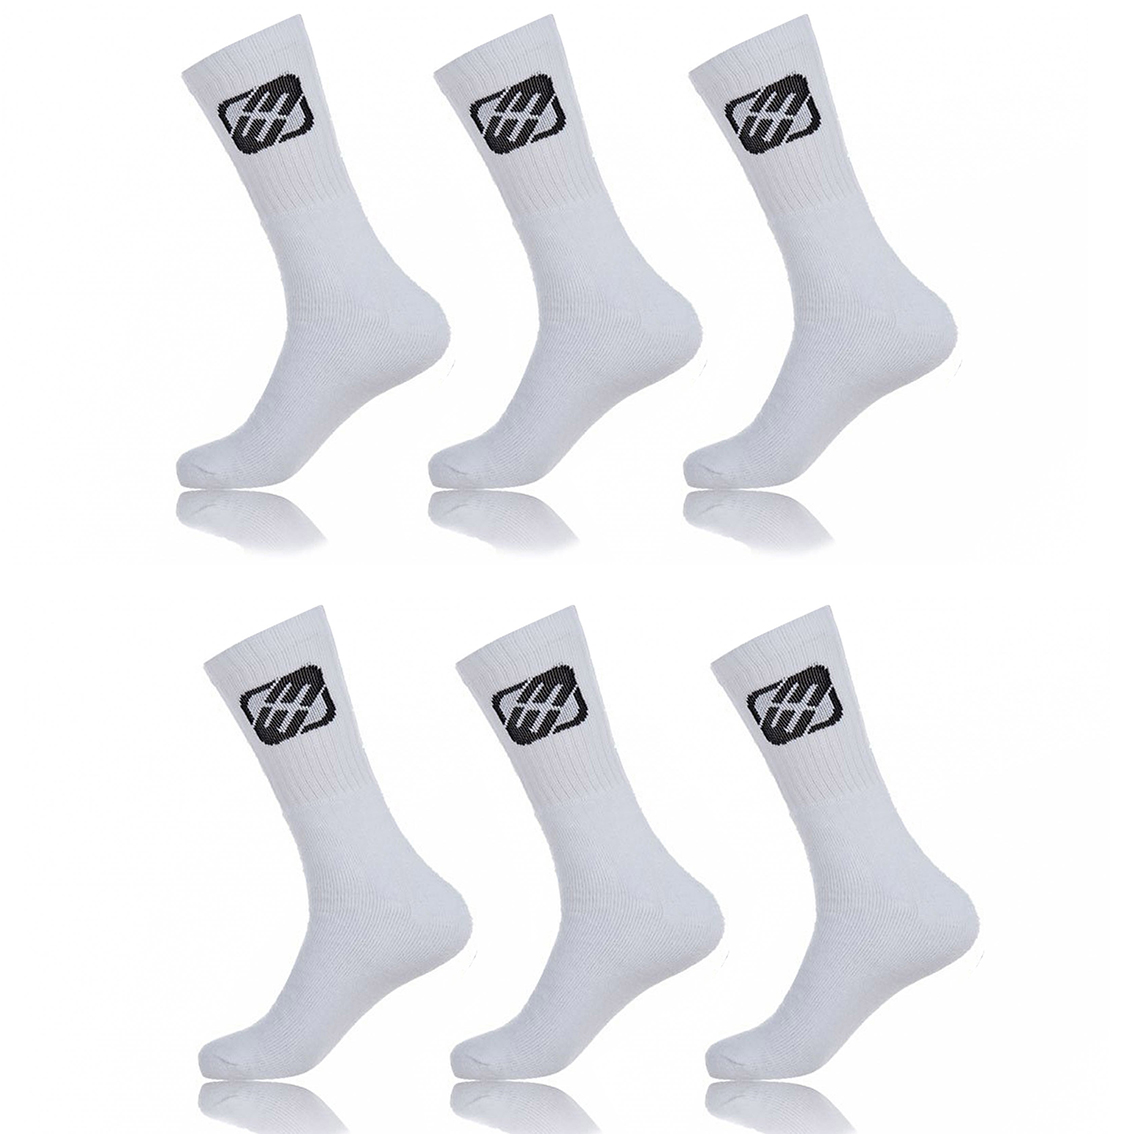 Lot de 6 paires de chaussettes tennis freegun garçon blanc (photo)